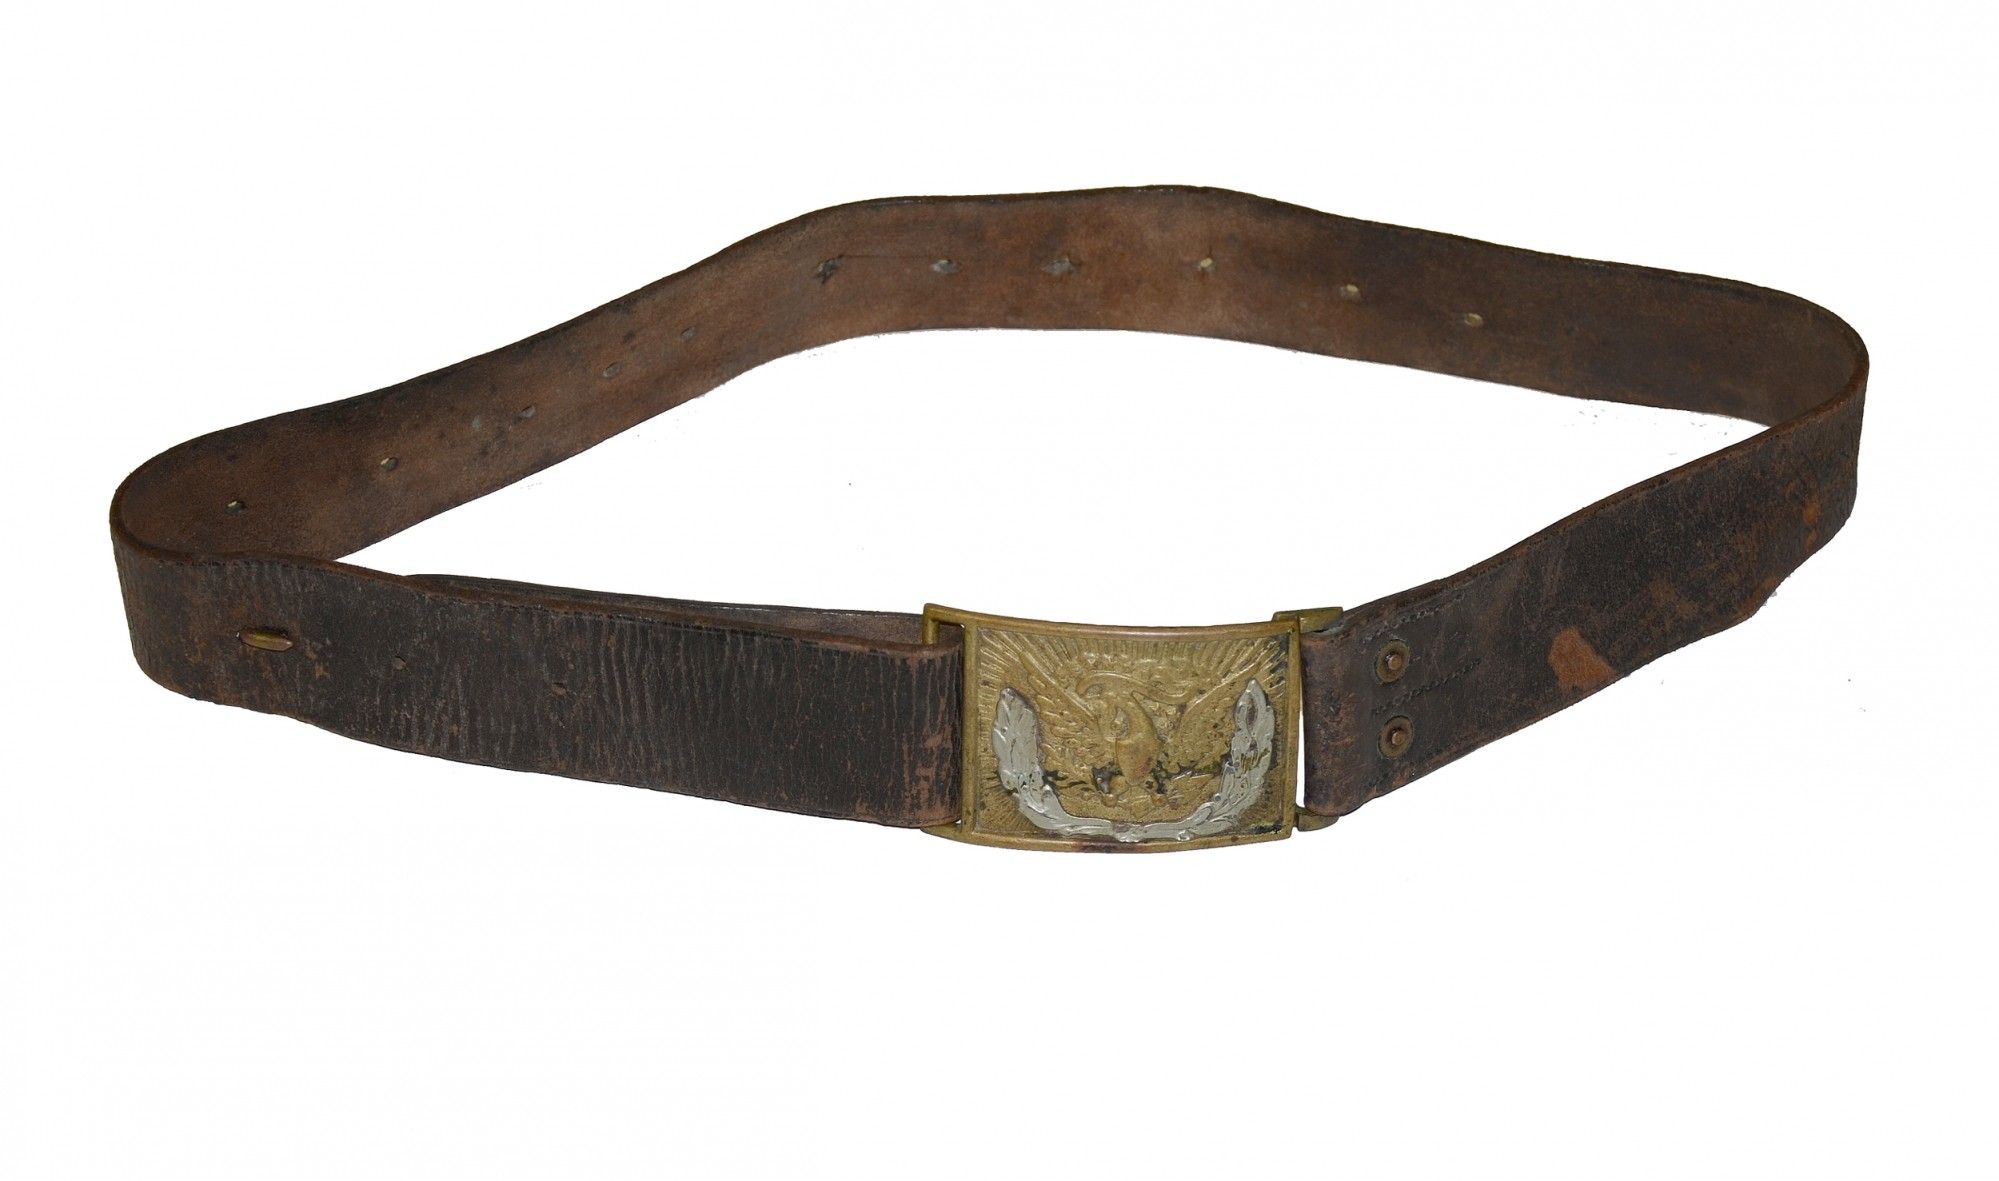 CIVIL WAR NCO BELT WITH BUCKLE AND KEEPER